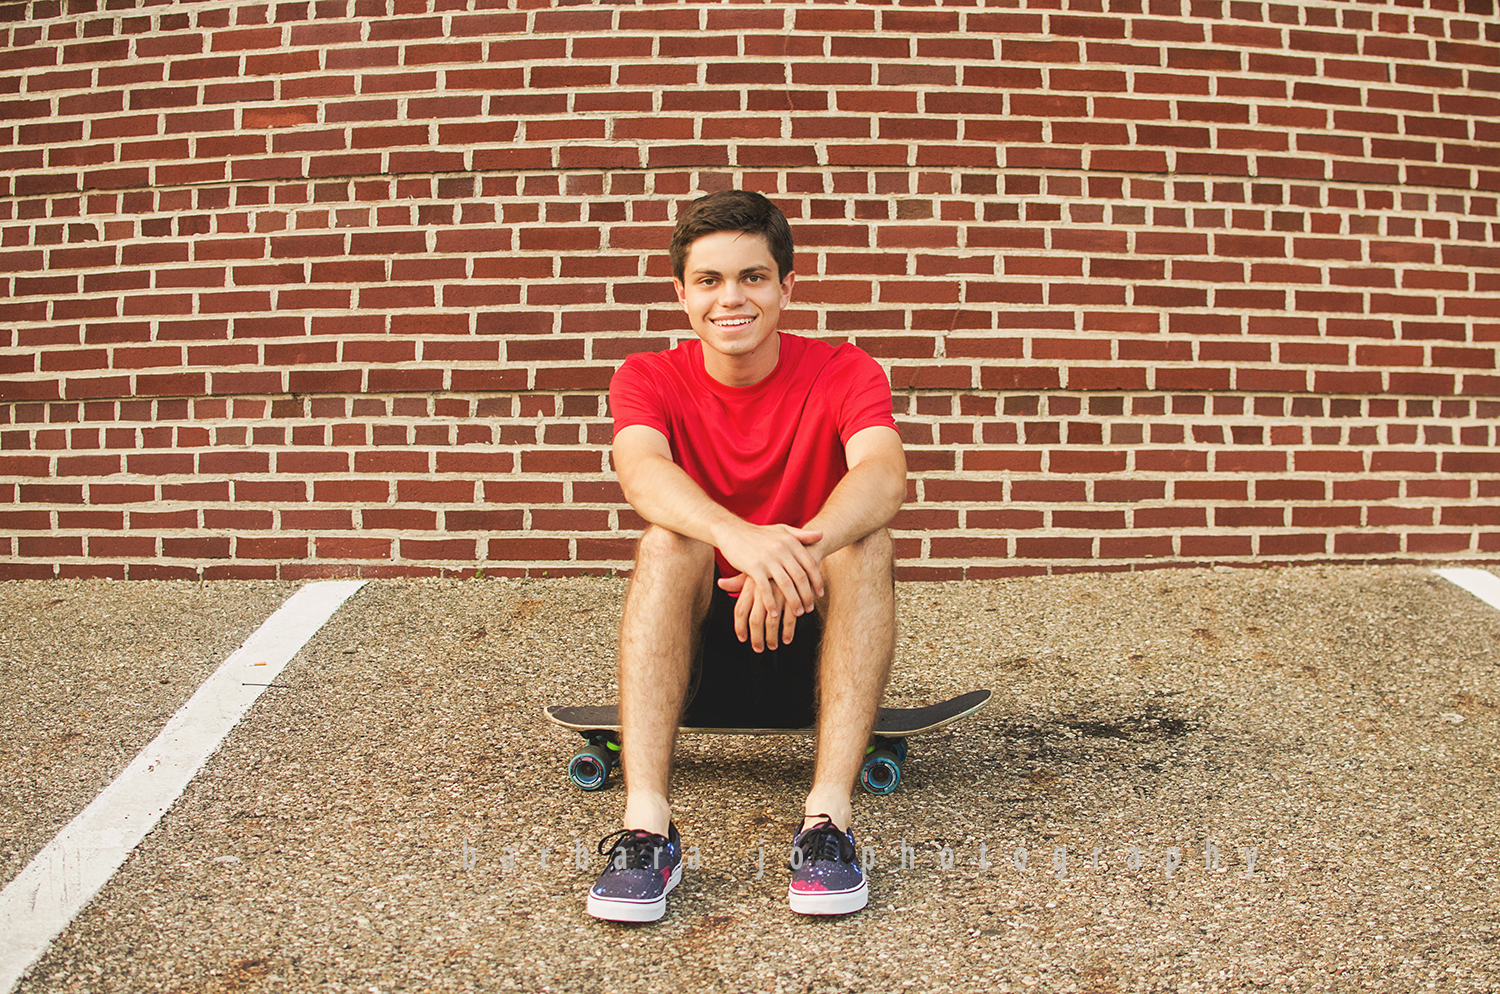 bjp-senior-portraits-guy-photographer-dover-nphs-ohio-drum-band-rock-quaker-tyler8.png